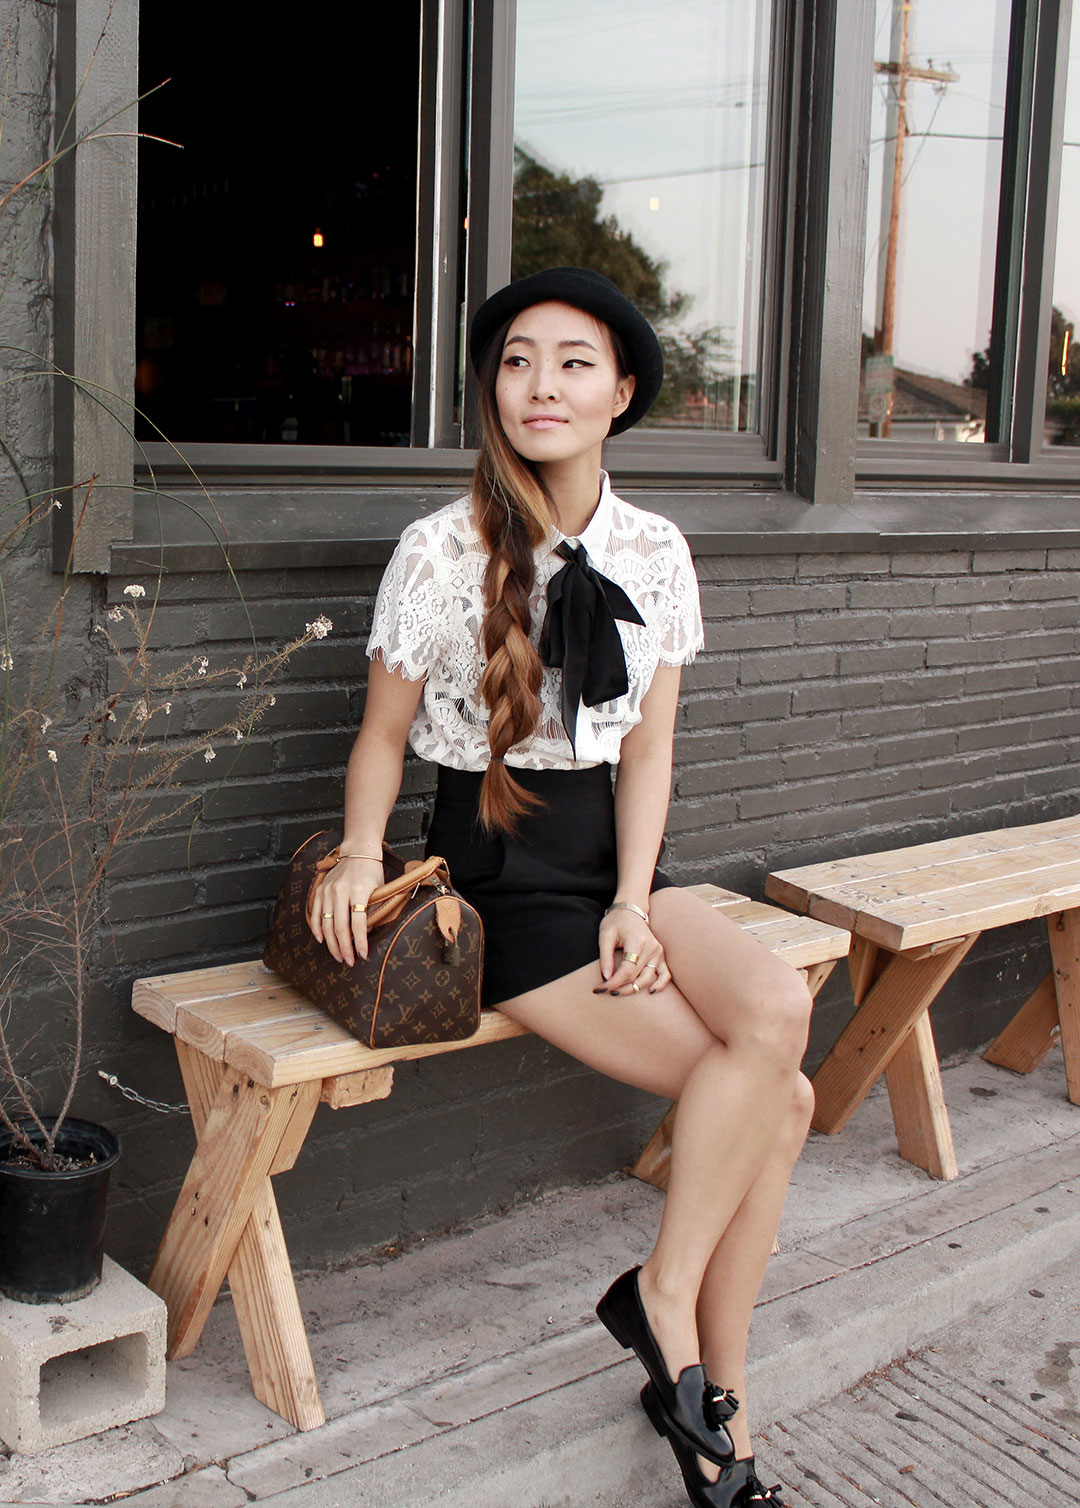 Nasty Gal lace blouse, Urban Outfitters hat, Zara high-waisted shorts, Zara loafers, and Louis Vuitton Speedy bag